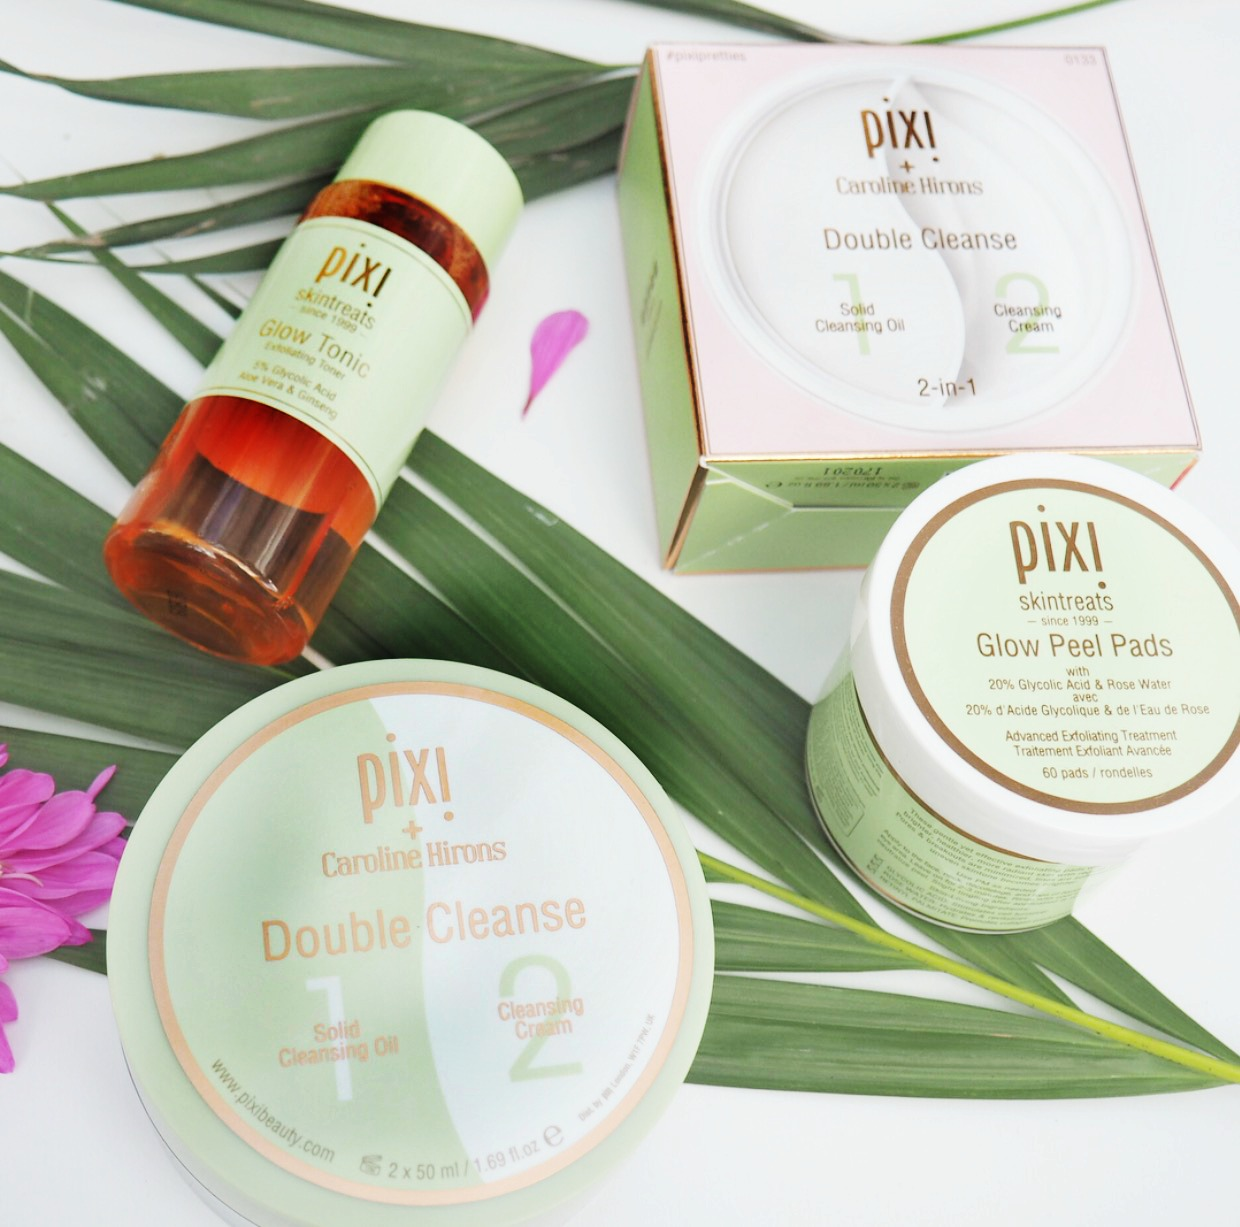 pixi products